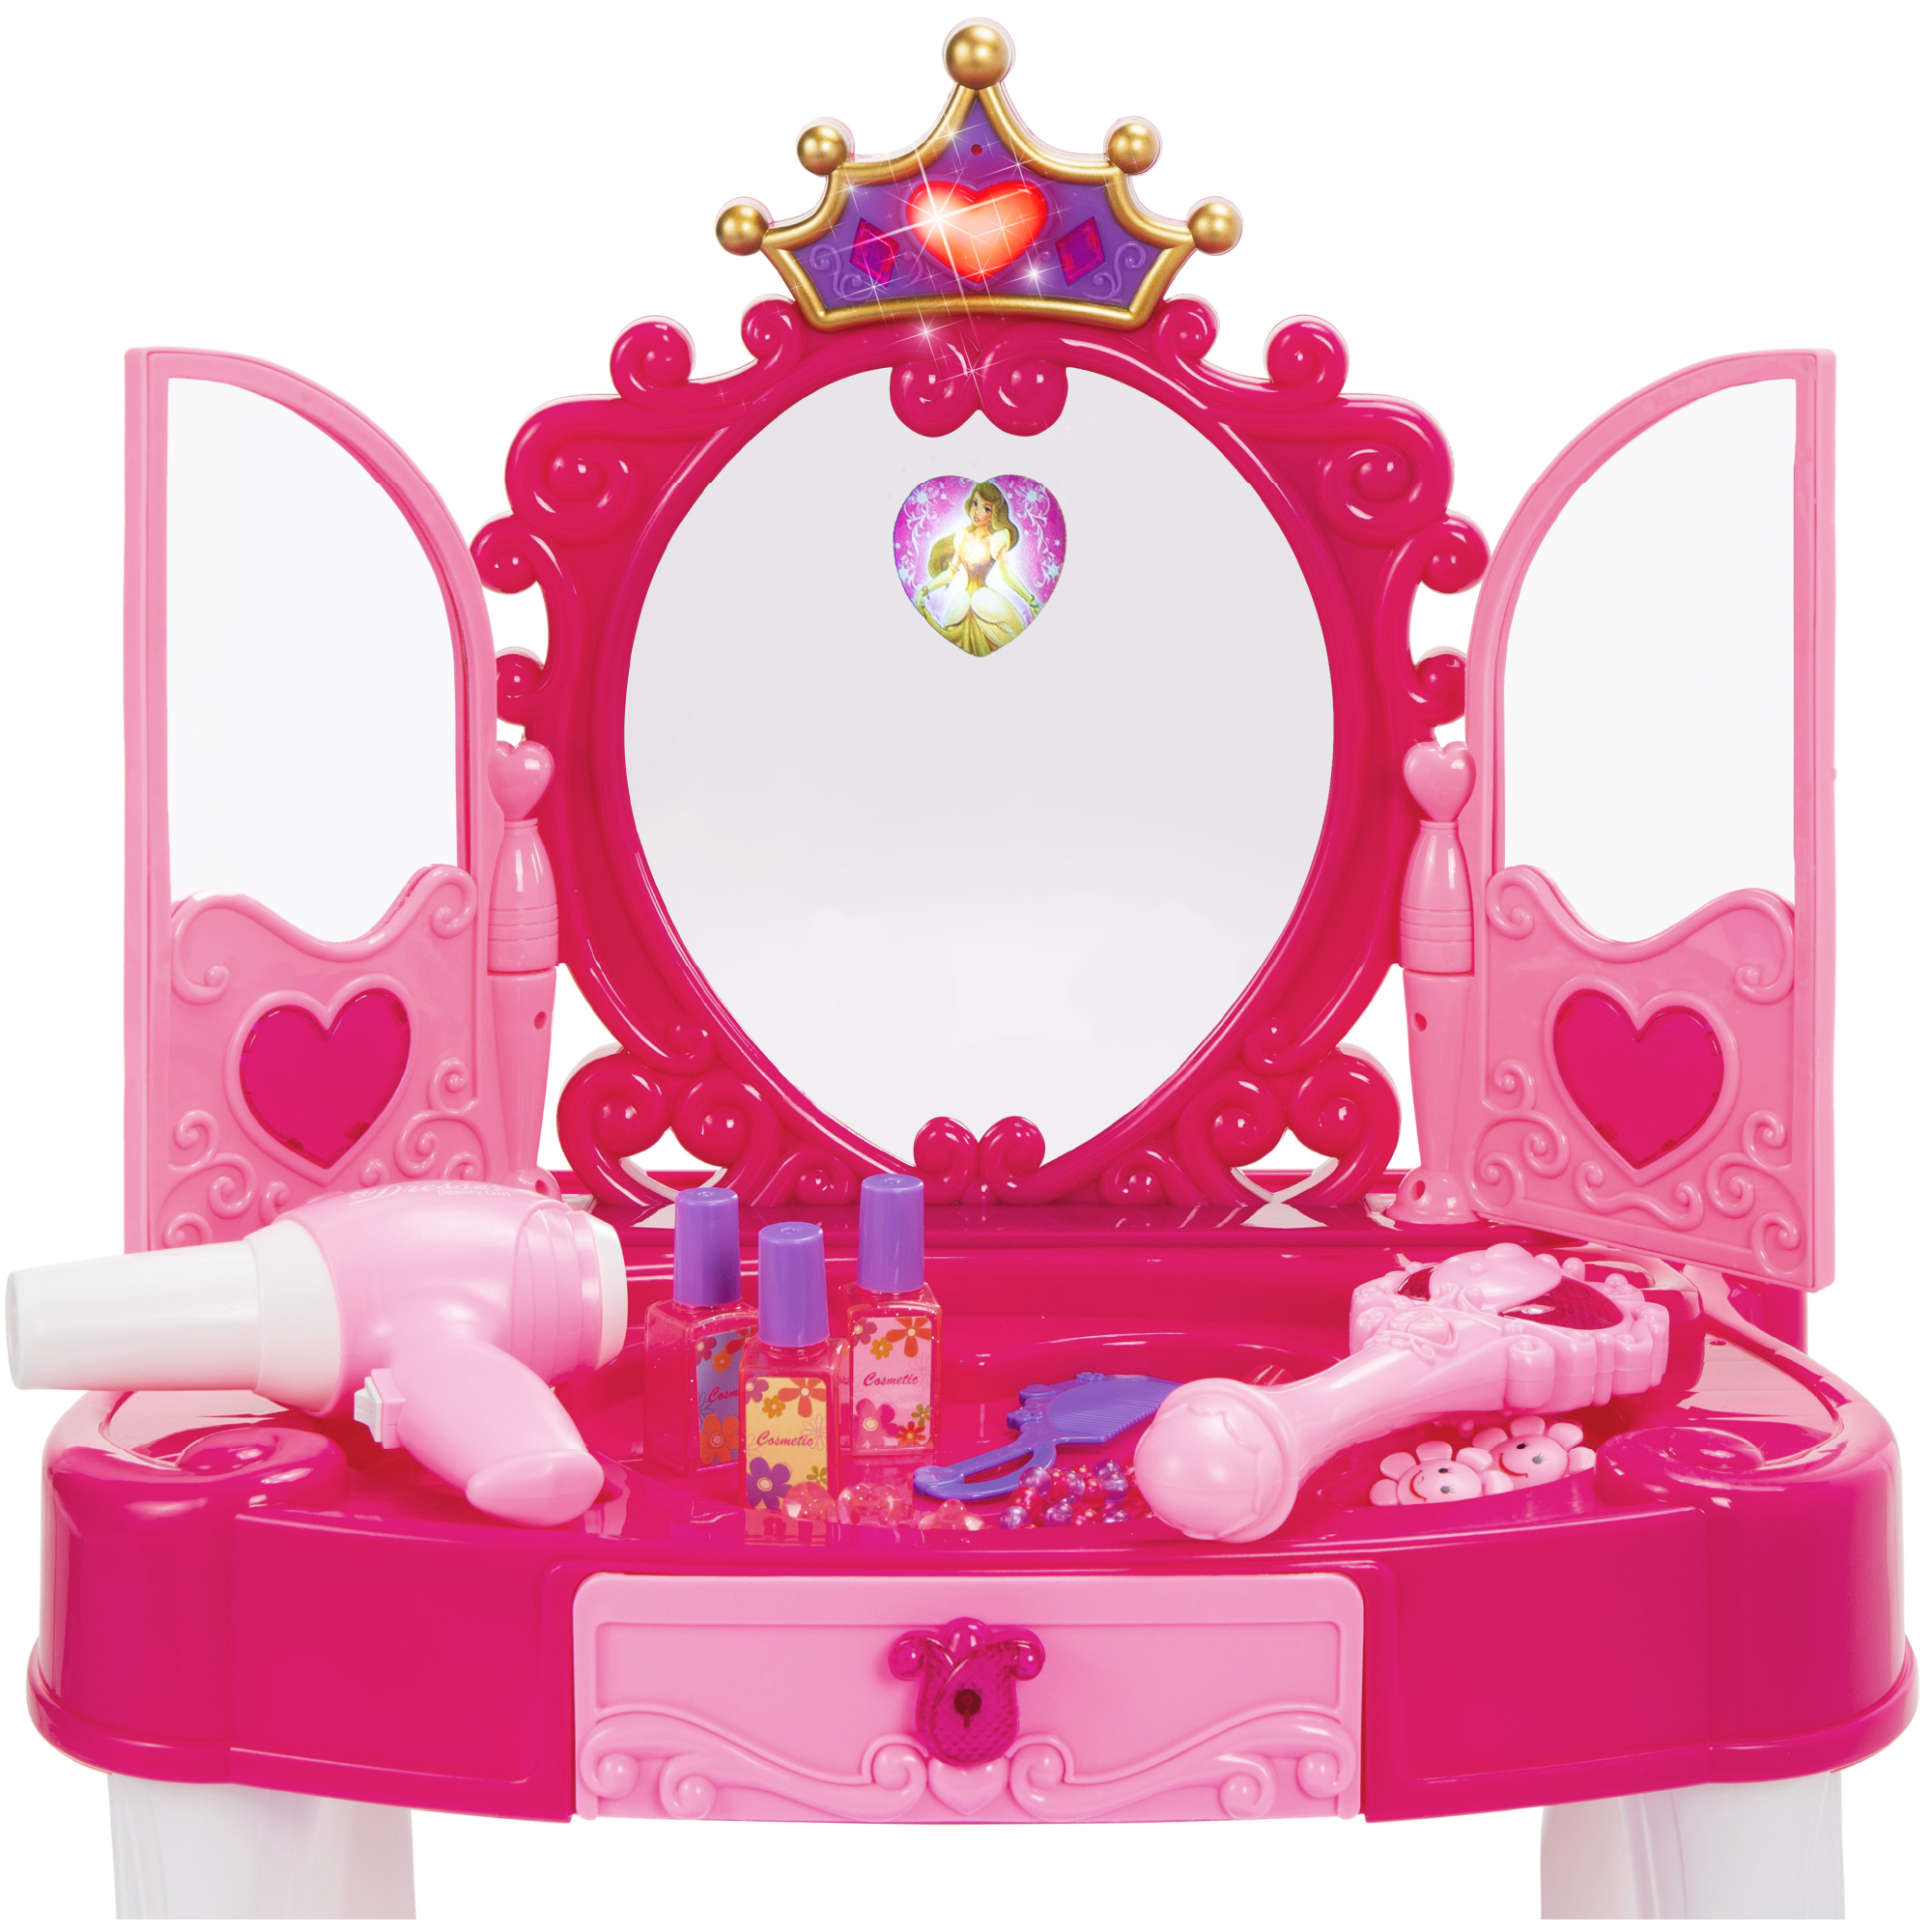 best choice products kids vanity mirror set girl pretend play toy w magic wand remote hairdryer stool accessories